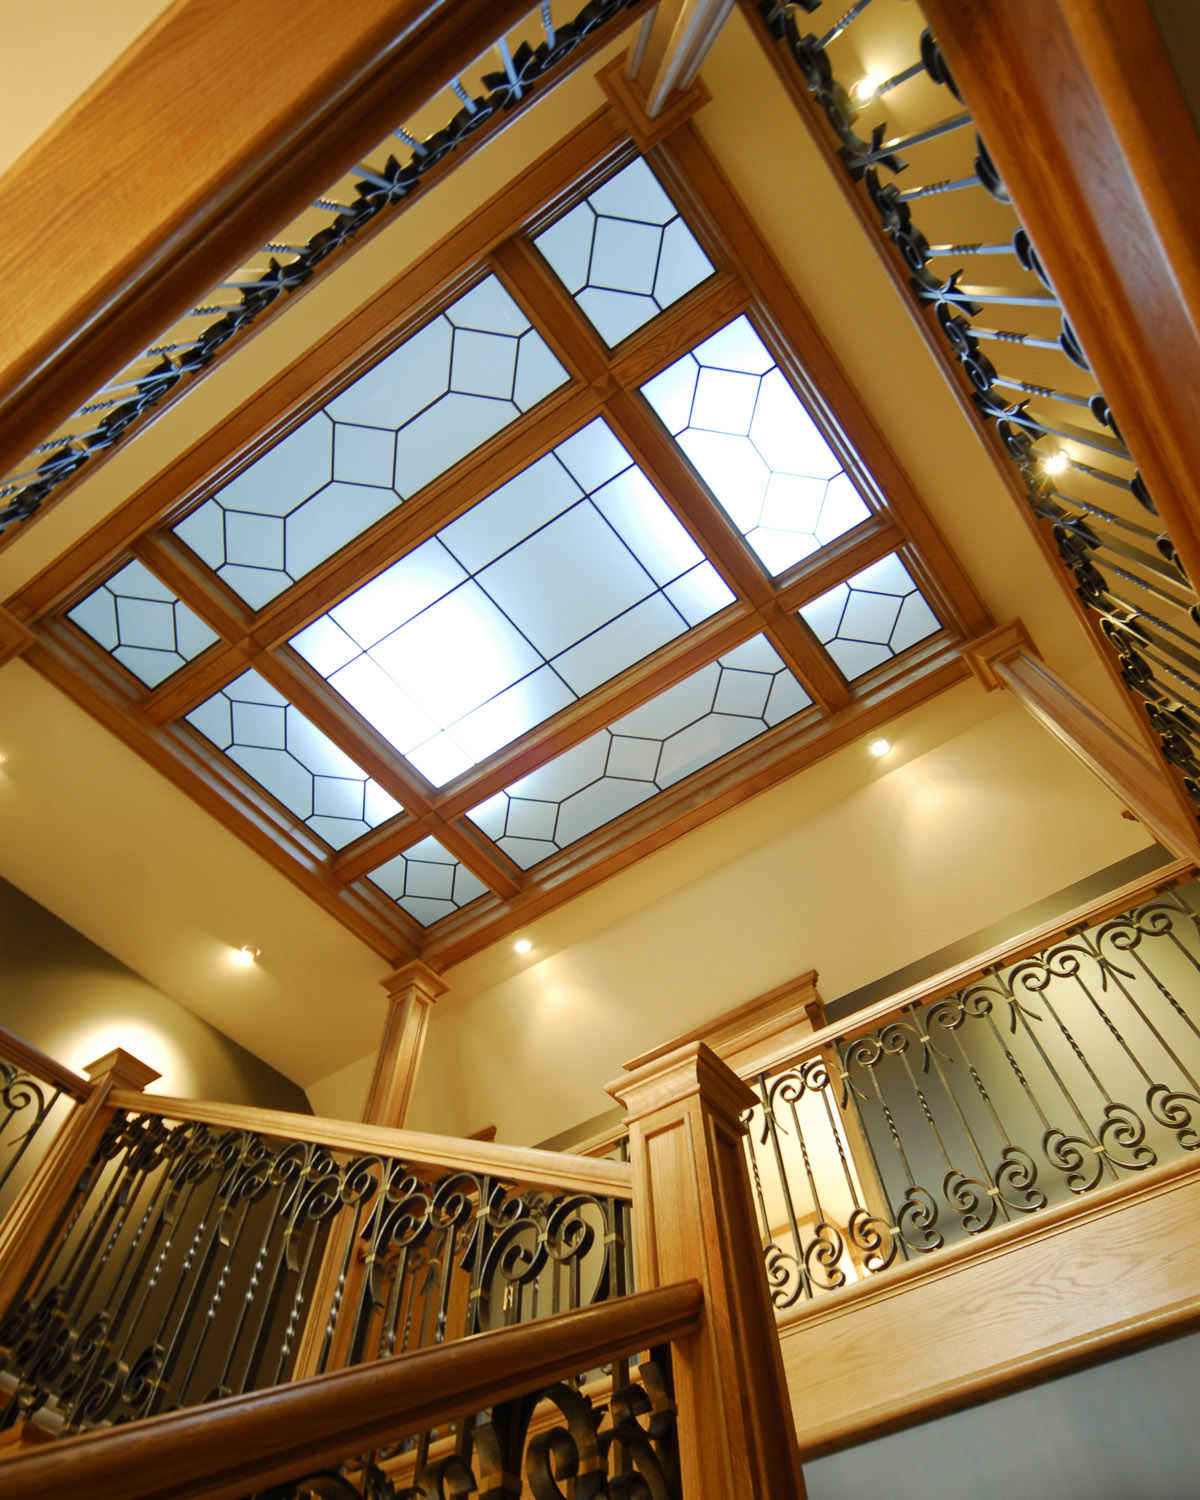 Handcrafted Wrought Iron Balustrade & Skylight